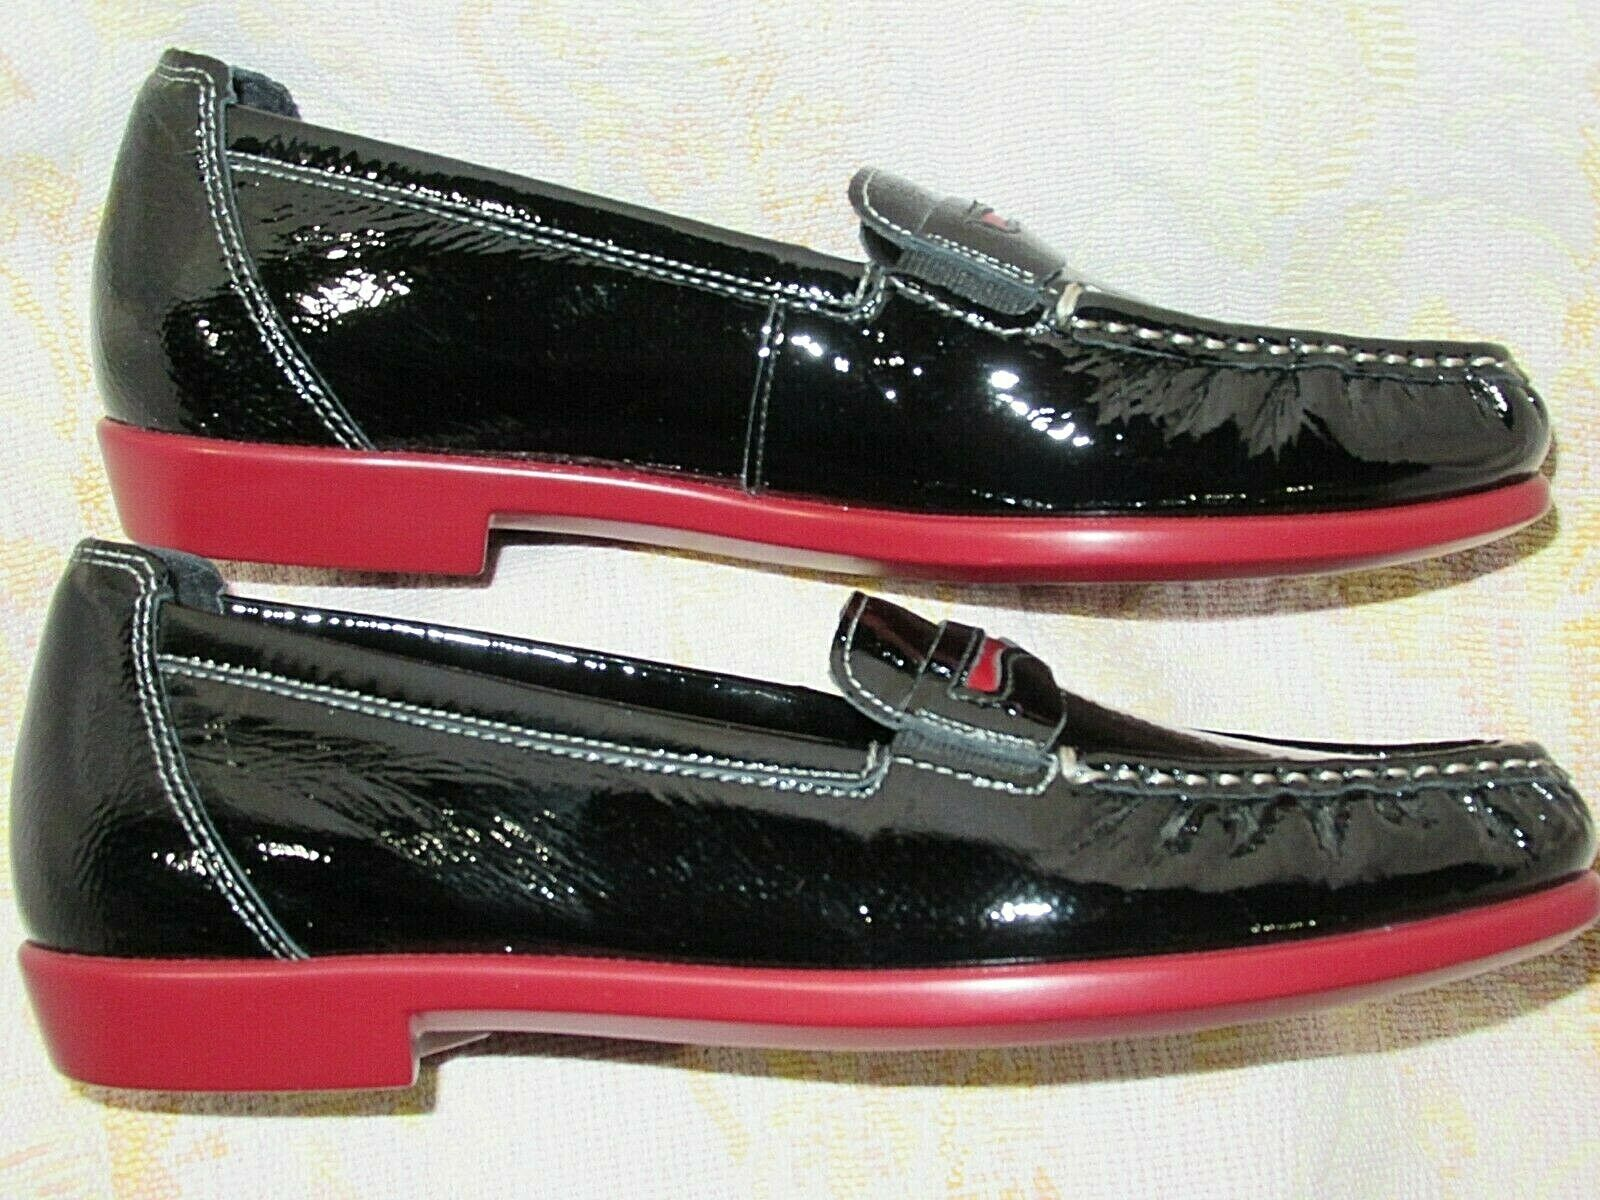 SAS Penny J nero Leather w rosso Soft Sole Loafers Loafers Loafers 7 M  ( 147.00)  NWOT USA  cc2046